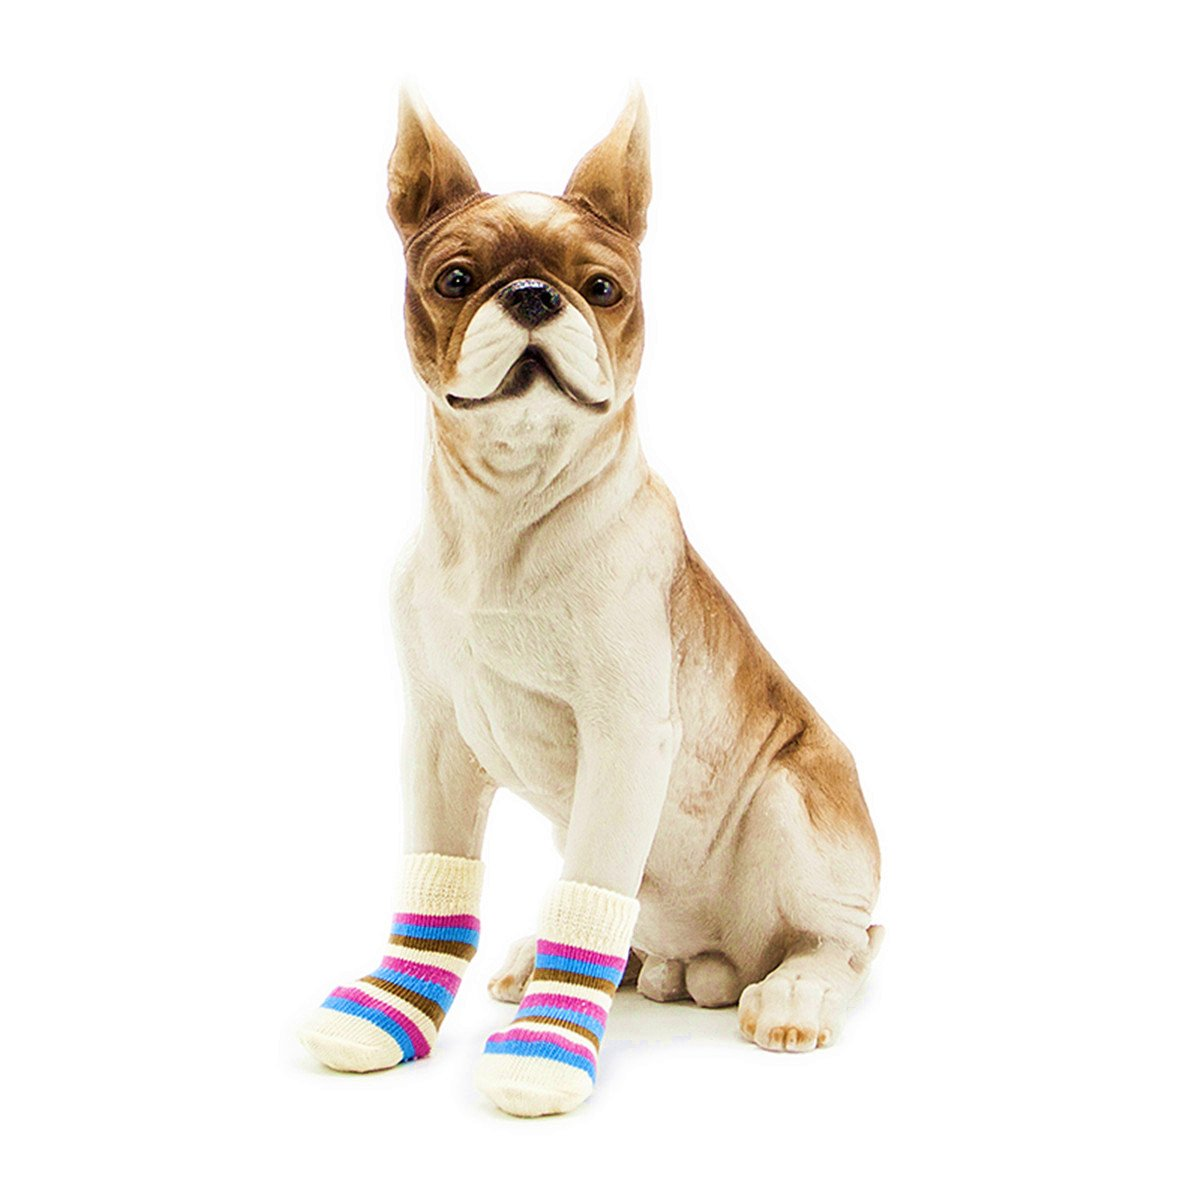 Pet Heroic 8 Sizes Anti-Slip Dog Socks Cat Socks Dog Cat Paw Protector with Rubber Reinforcement Traction Control for Indoor Wear Fit Extra Small to Extra Large Dogs Cats